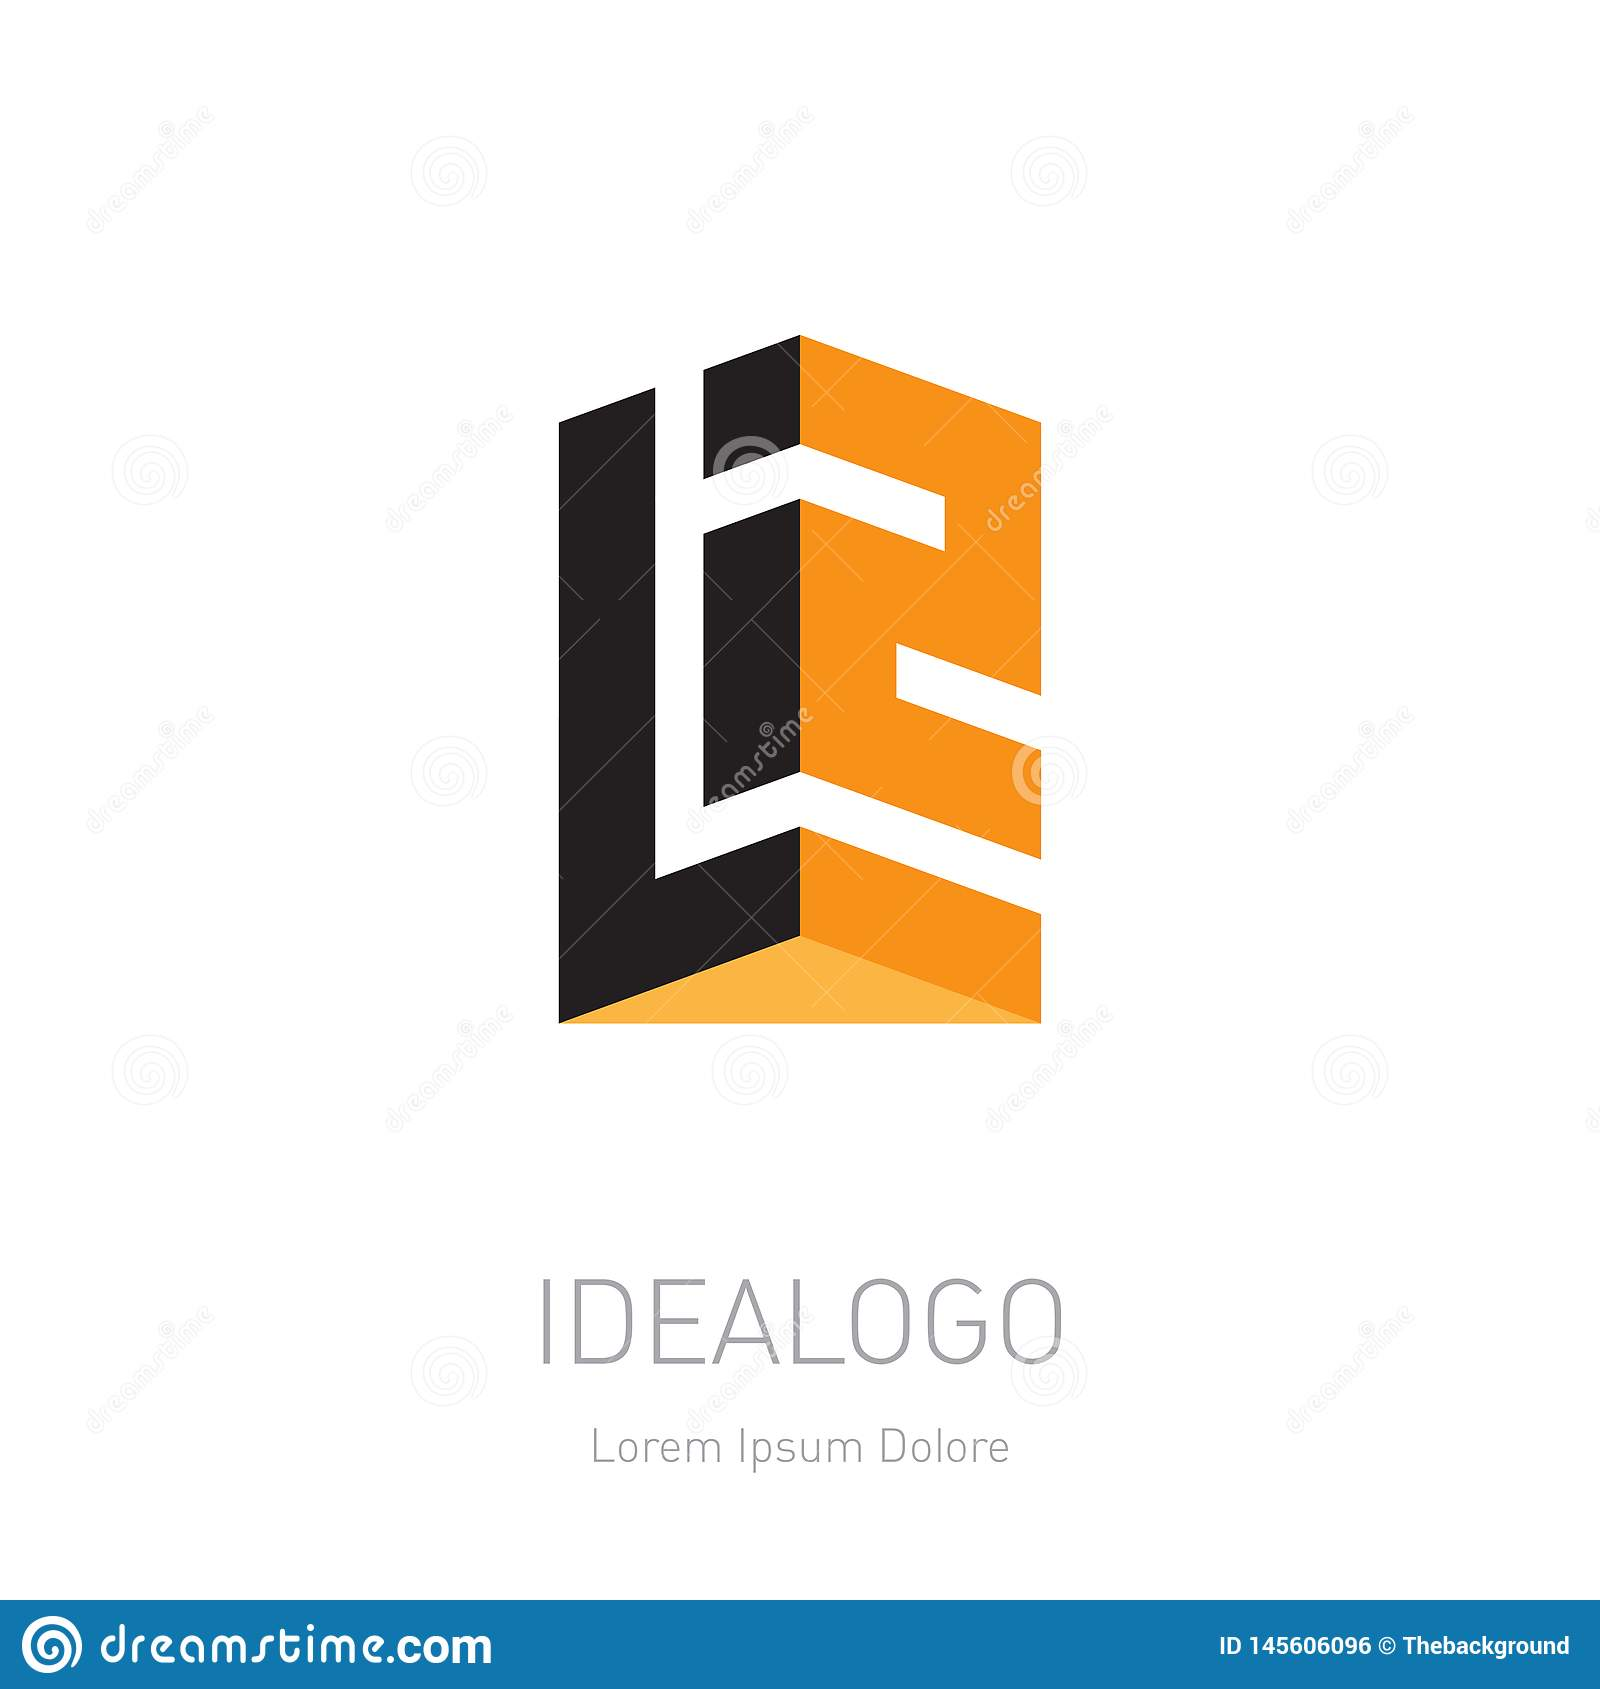 3d logo with letter l and number 2 or monogram logotype vector design element or icon stock vector illustration of element corporation 145606096 https www dreamstime com d logo letter l number monogram logotype vector design element icon image145606096